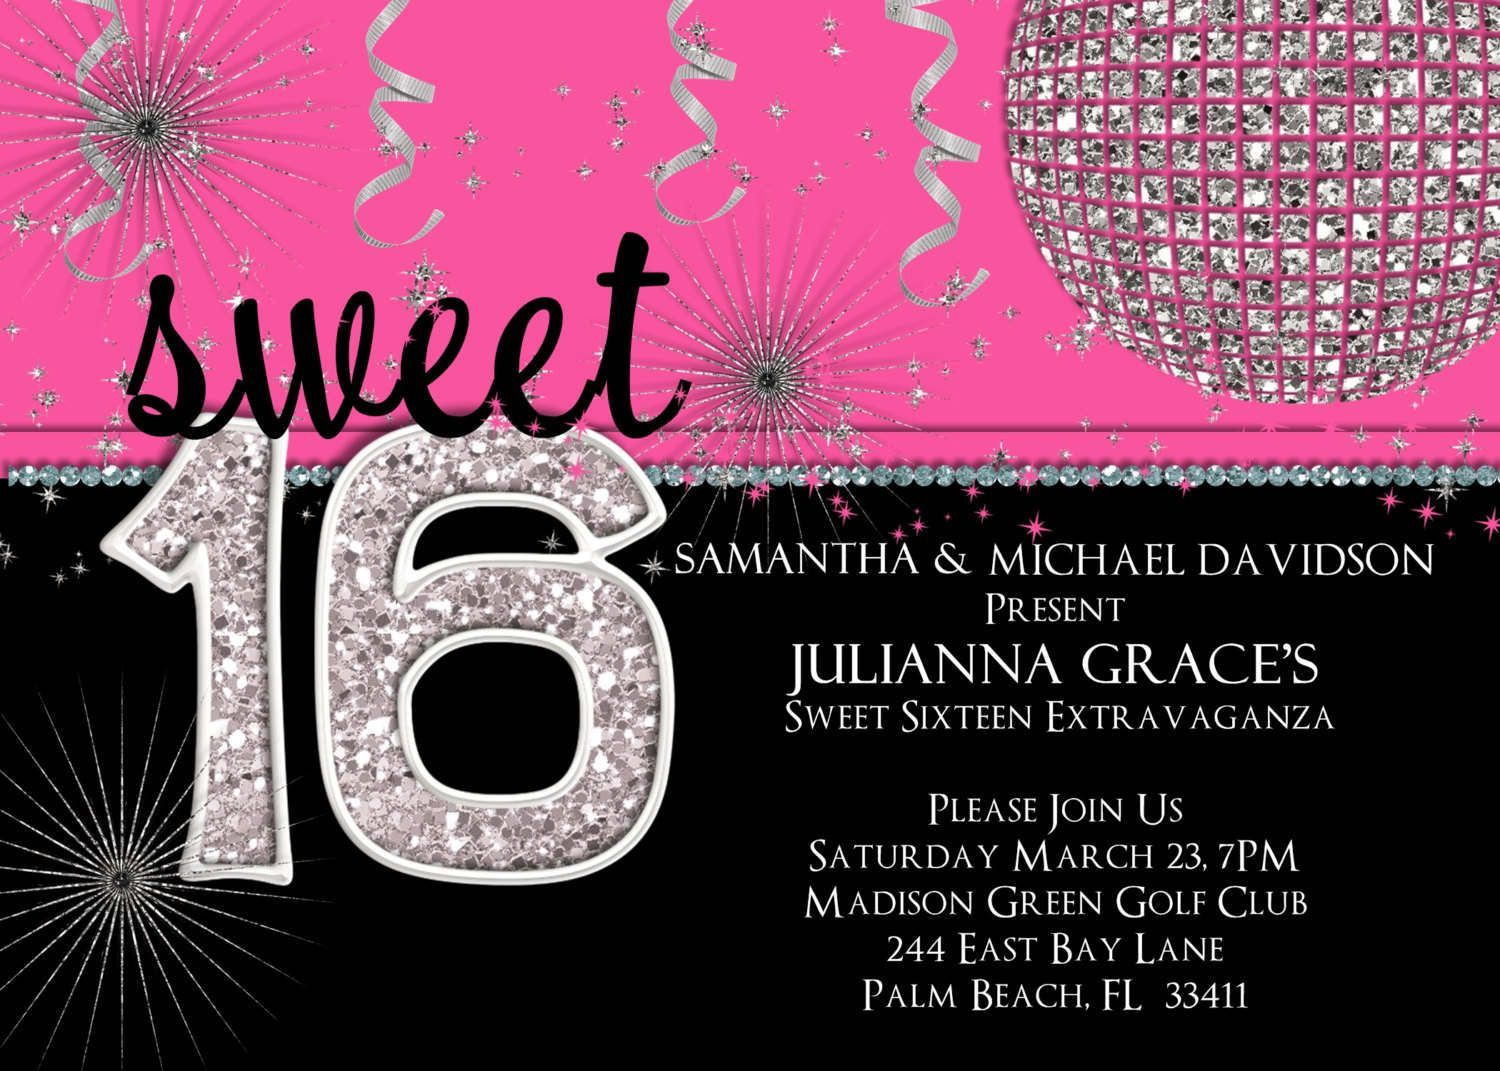 002 Remarkable Sweet Sixteen Invitation Template High Definition  Templates Blue 16 Party FreeFull